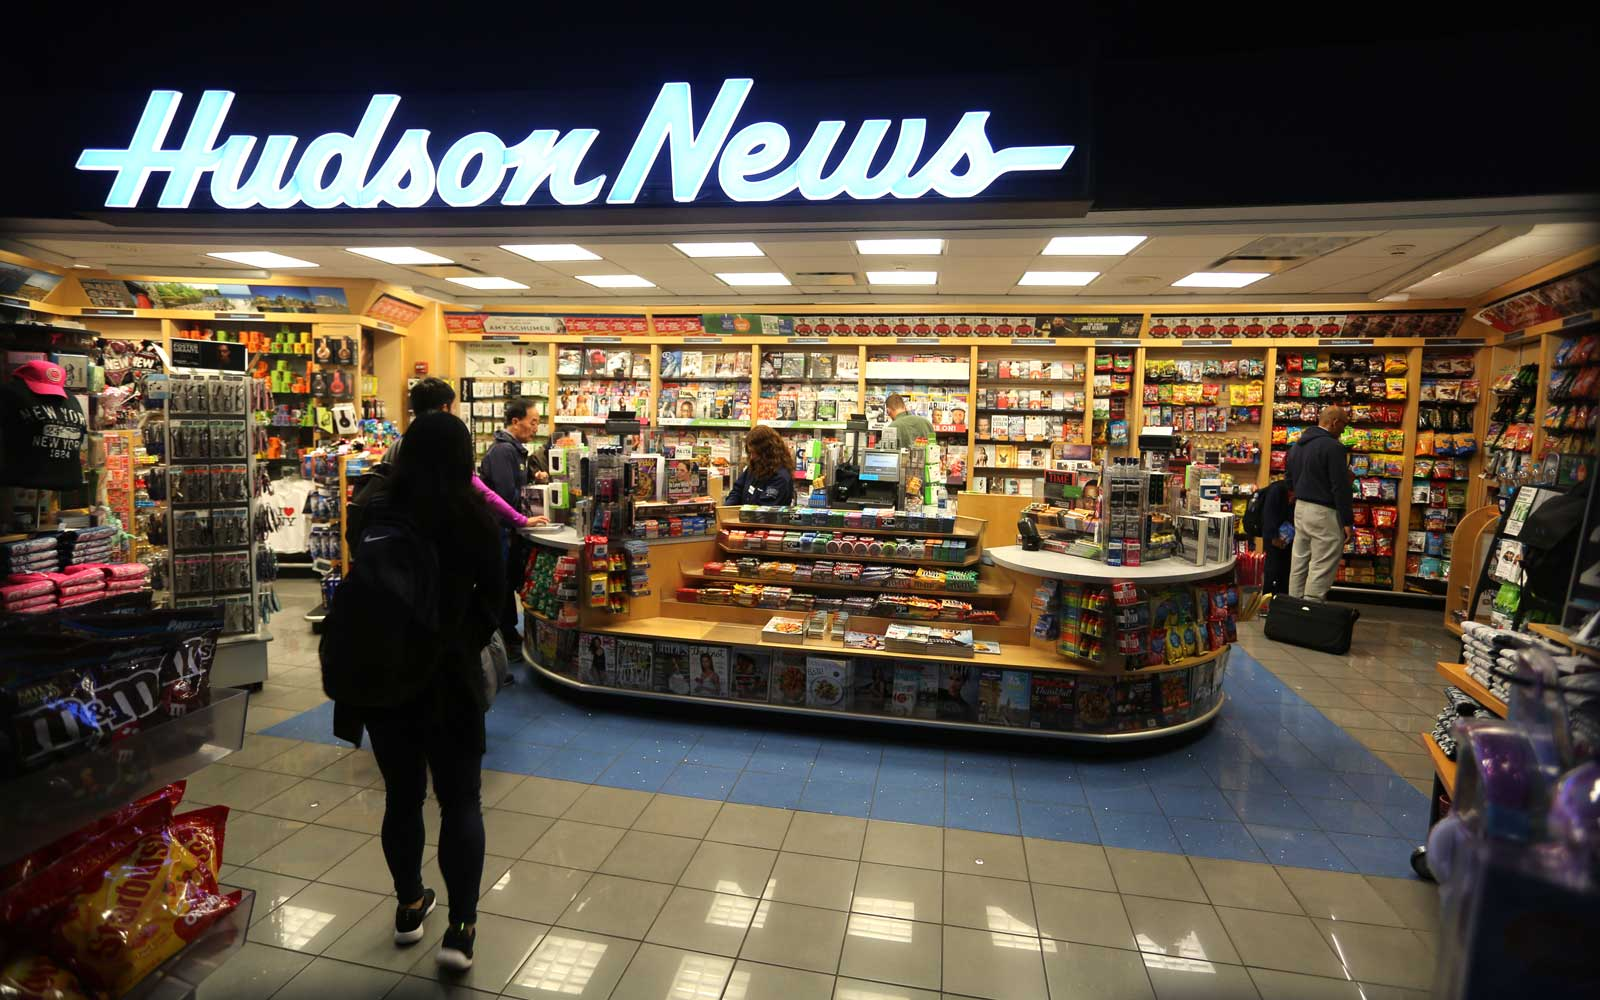 Hudson News store at an airport